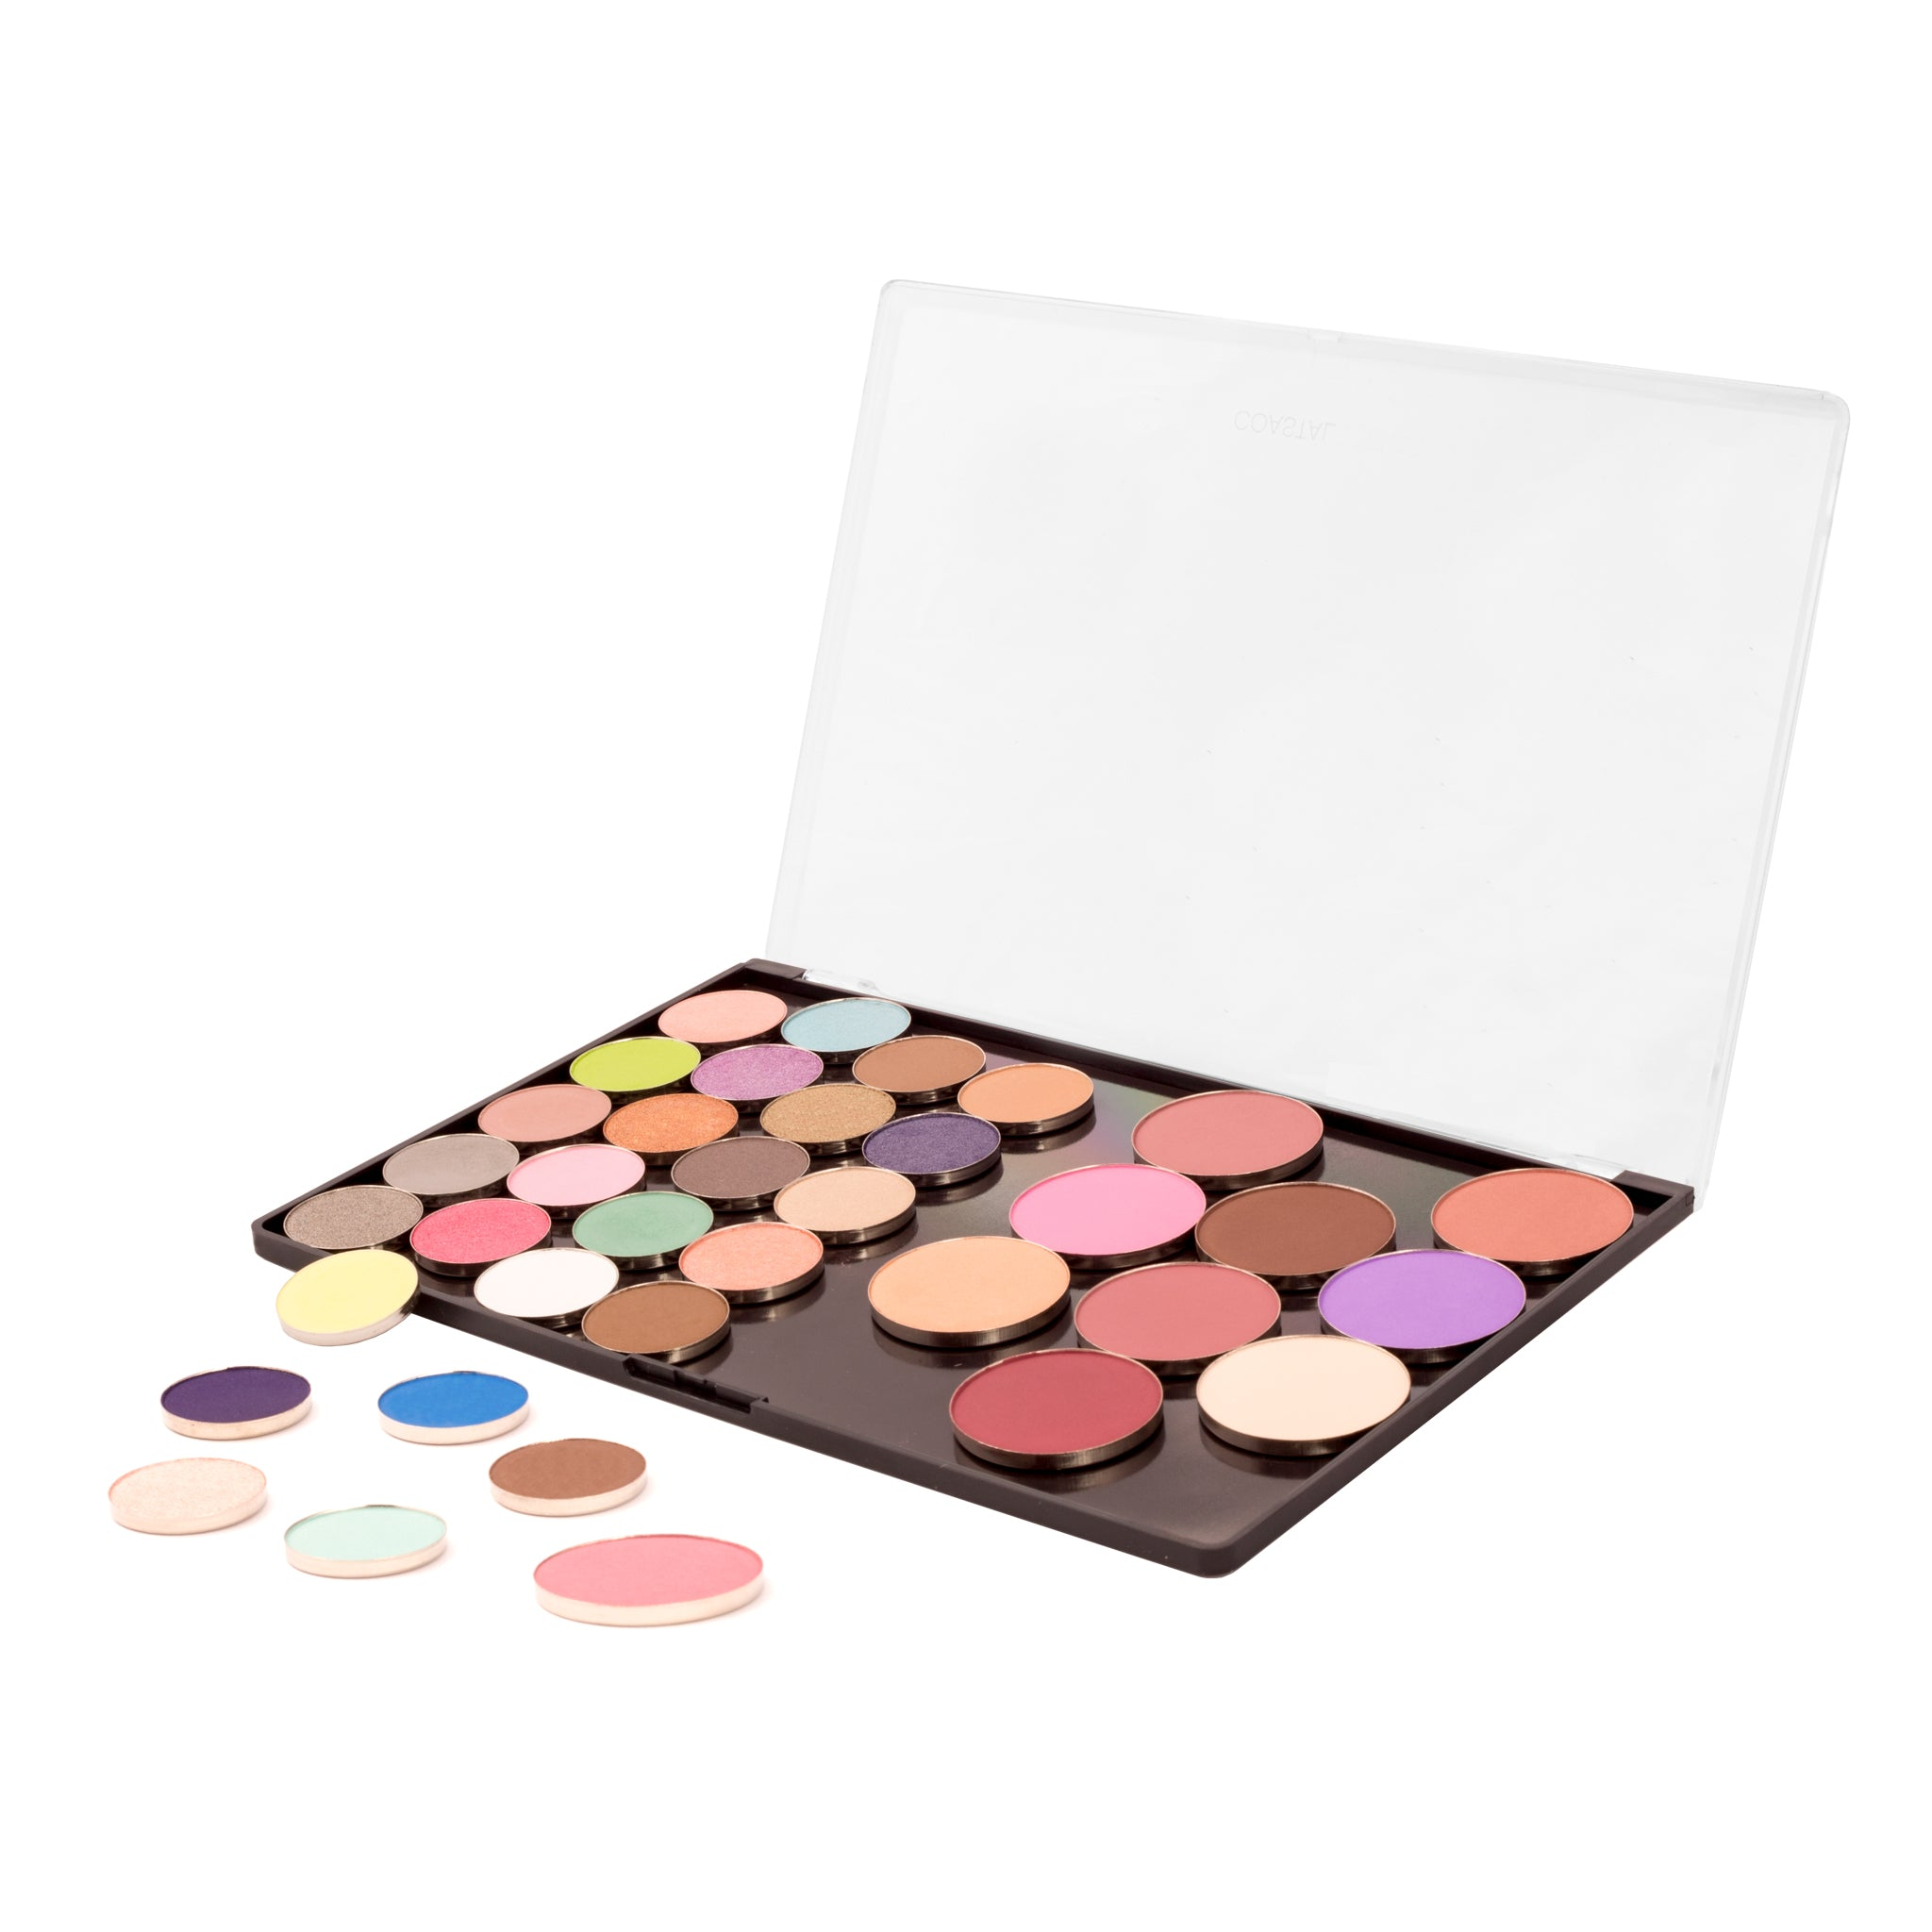 Makeup Palette- Freedom Palette (Empty) With Hot Pots By Coastal Scents